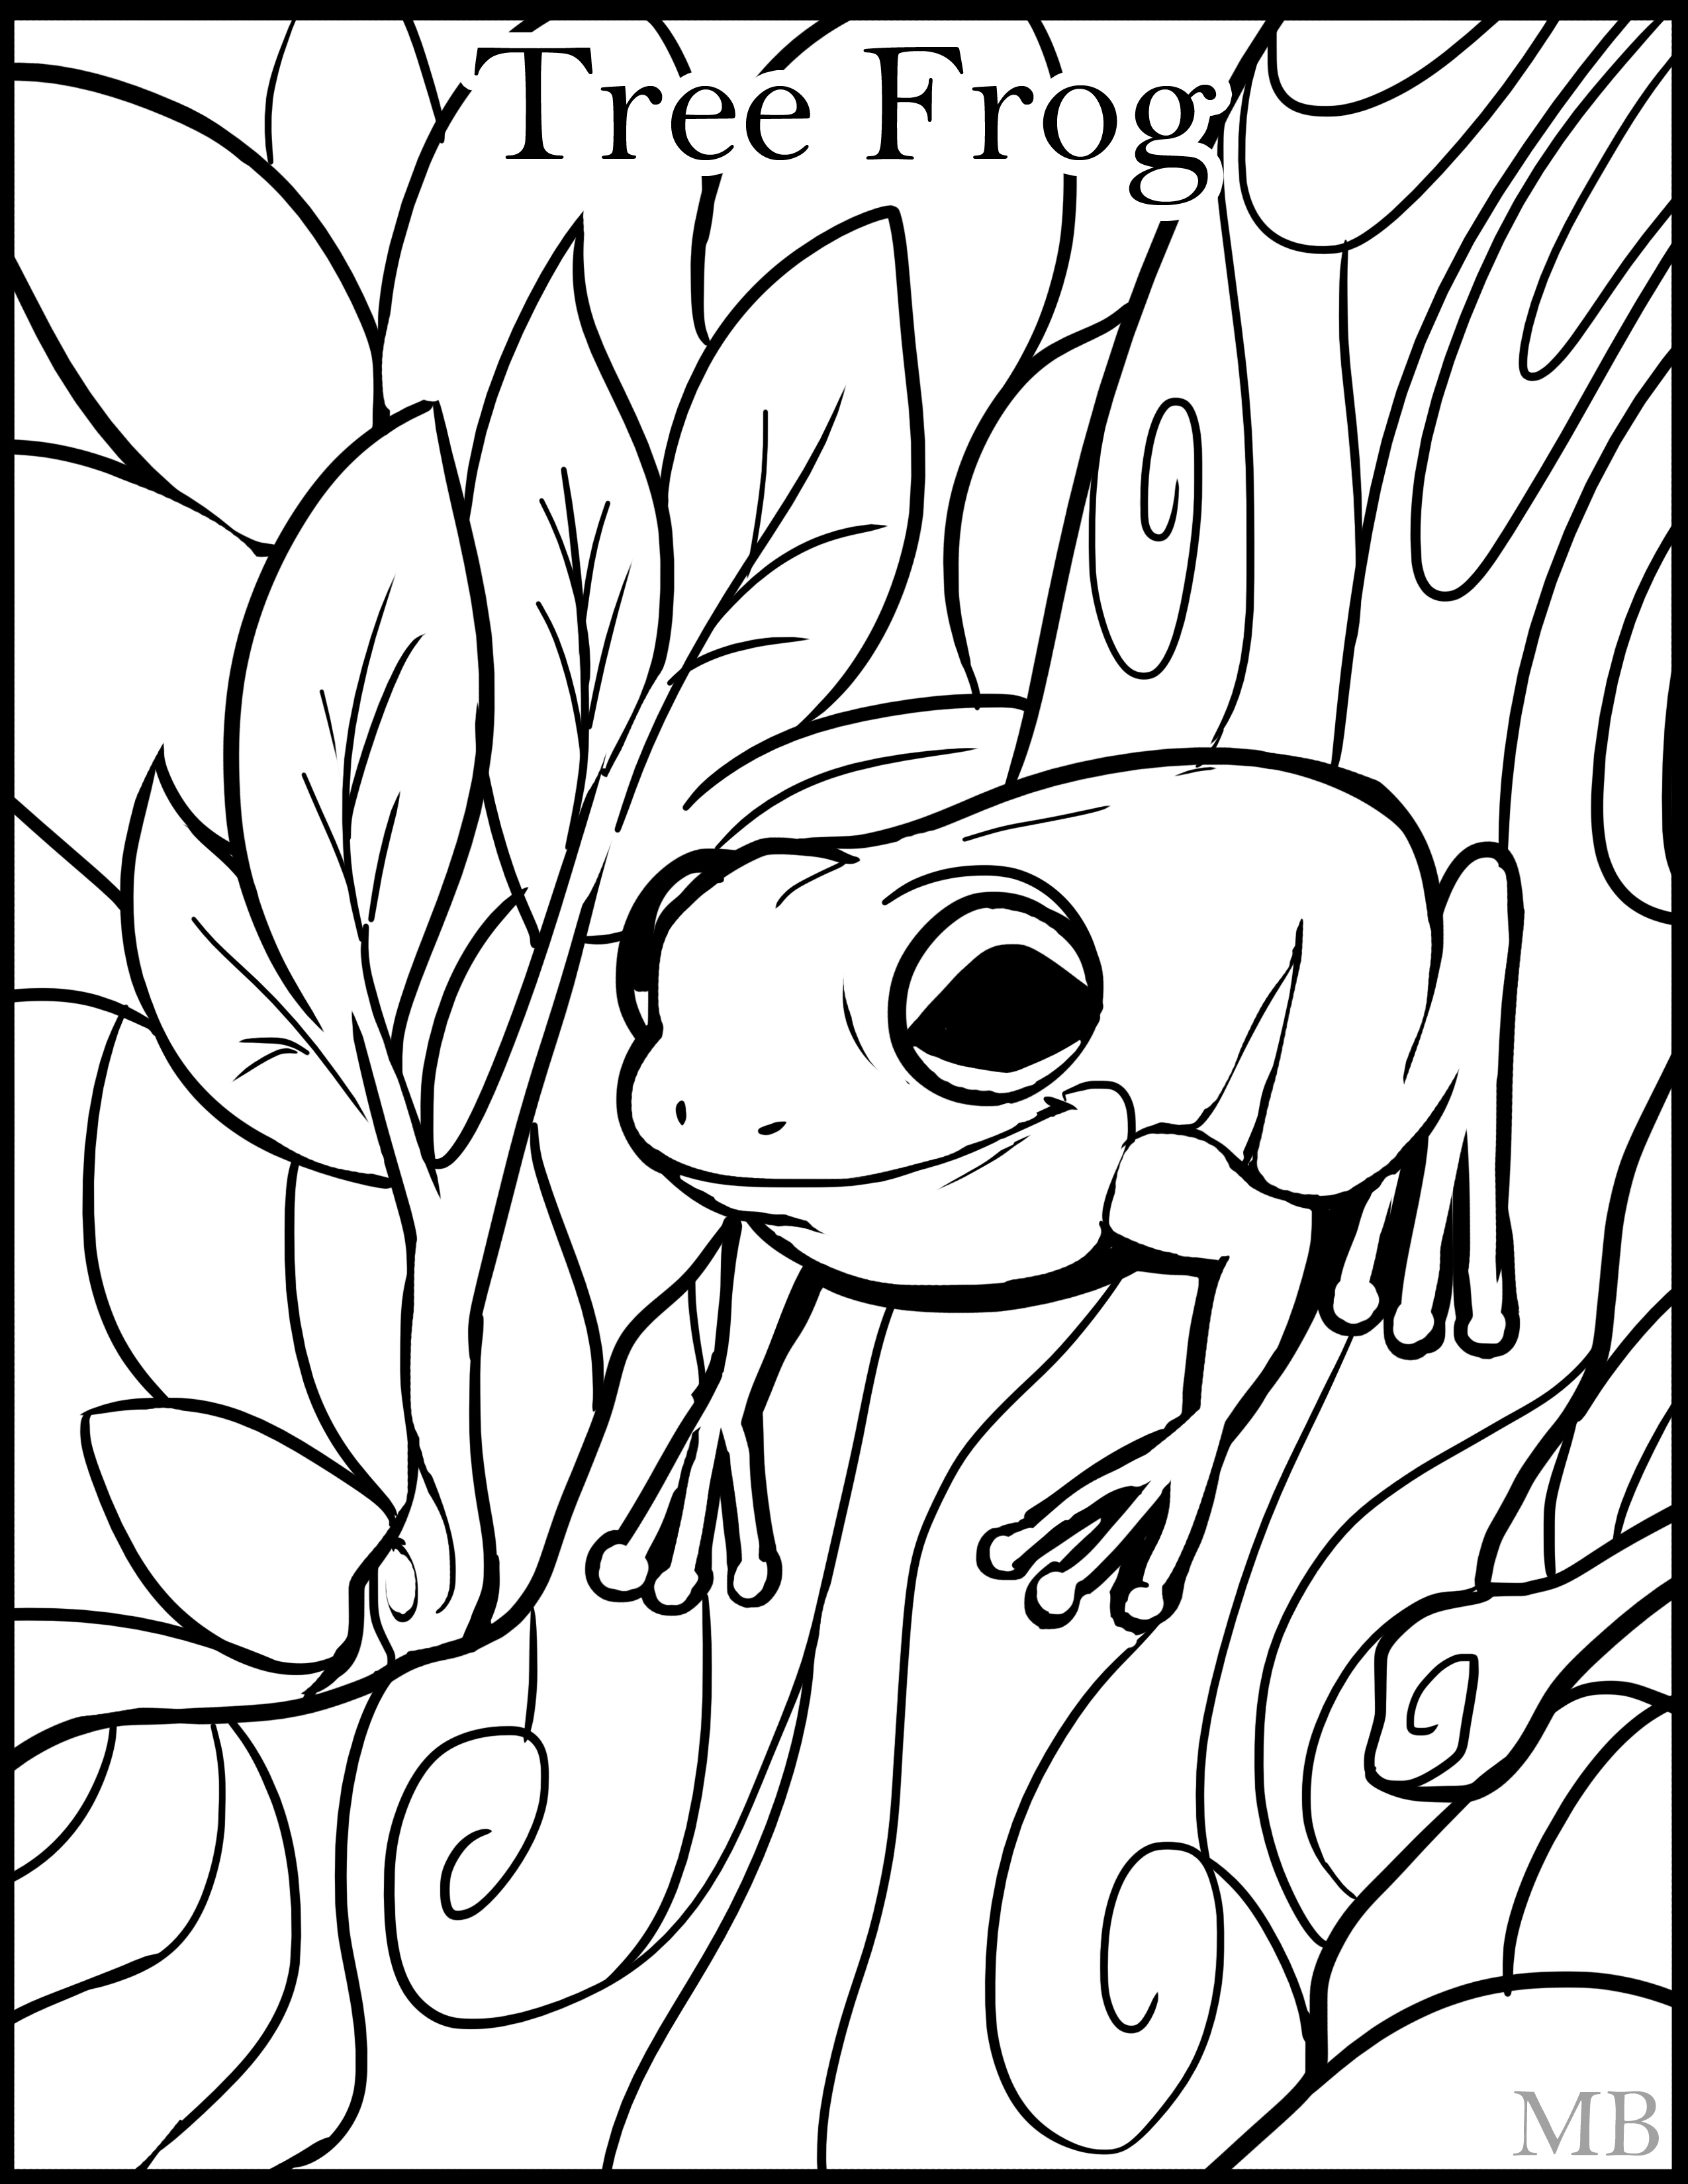 frog coloring pages to print cute frog coloring sheets 101 activity coloring print to pages frog